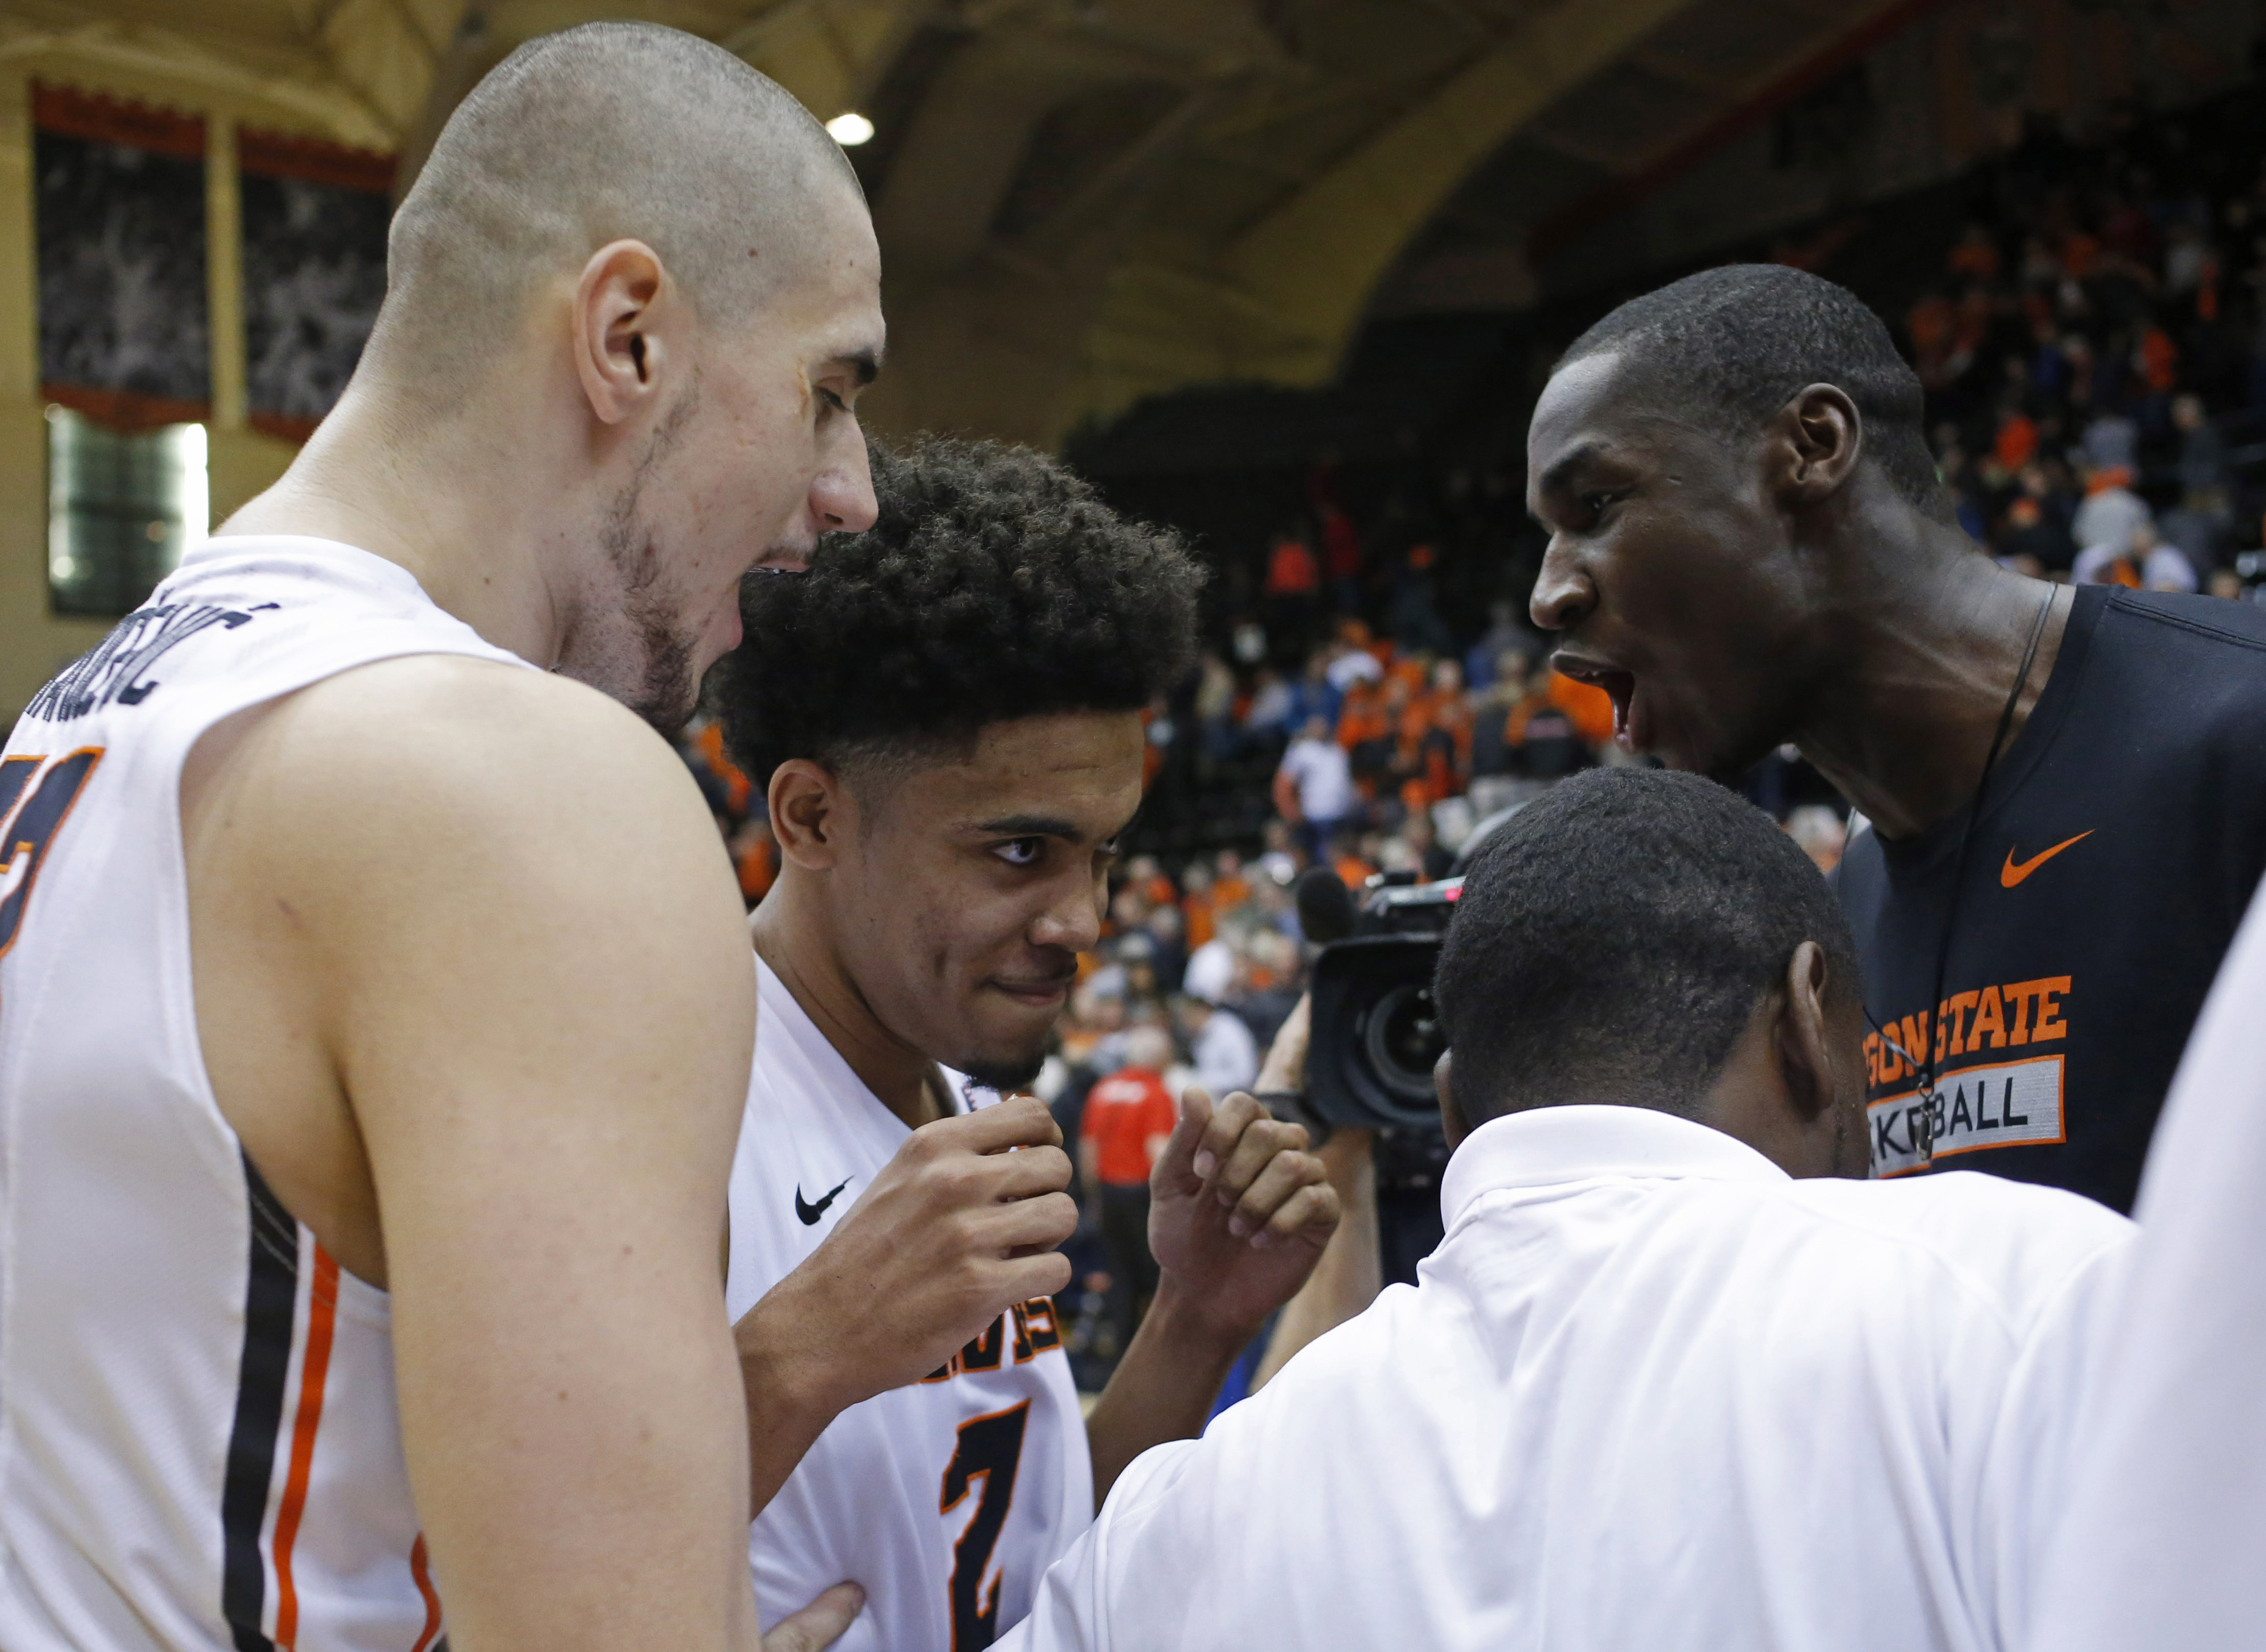 Oregon State's Stephen Thompson Jr., center, celebrates with teammates after he made free throws with no time left on the clock to give Oregon State a 71-69 win over Utah in an NCAA college basketball game in Corvallis, Ore., on Thursday, Feb. 4, 2016. (A